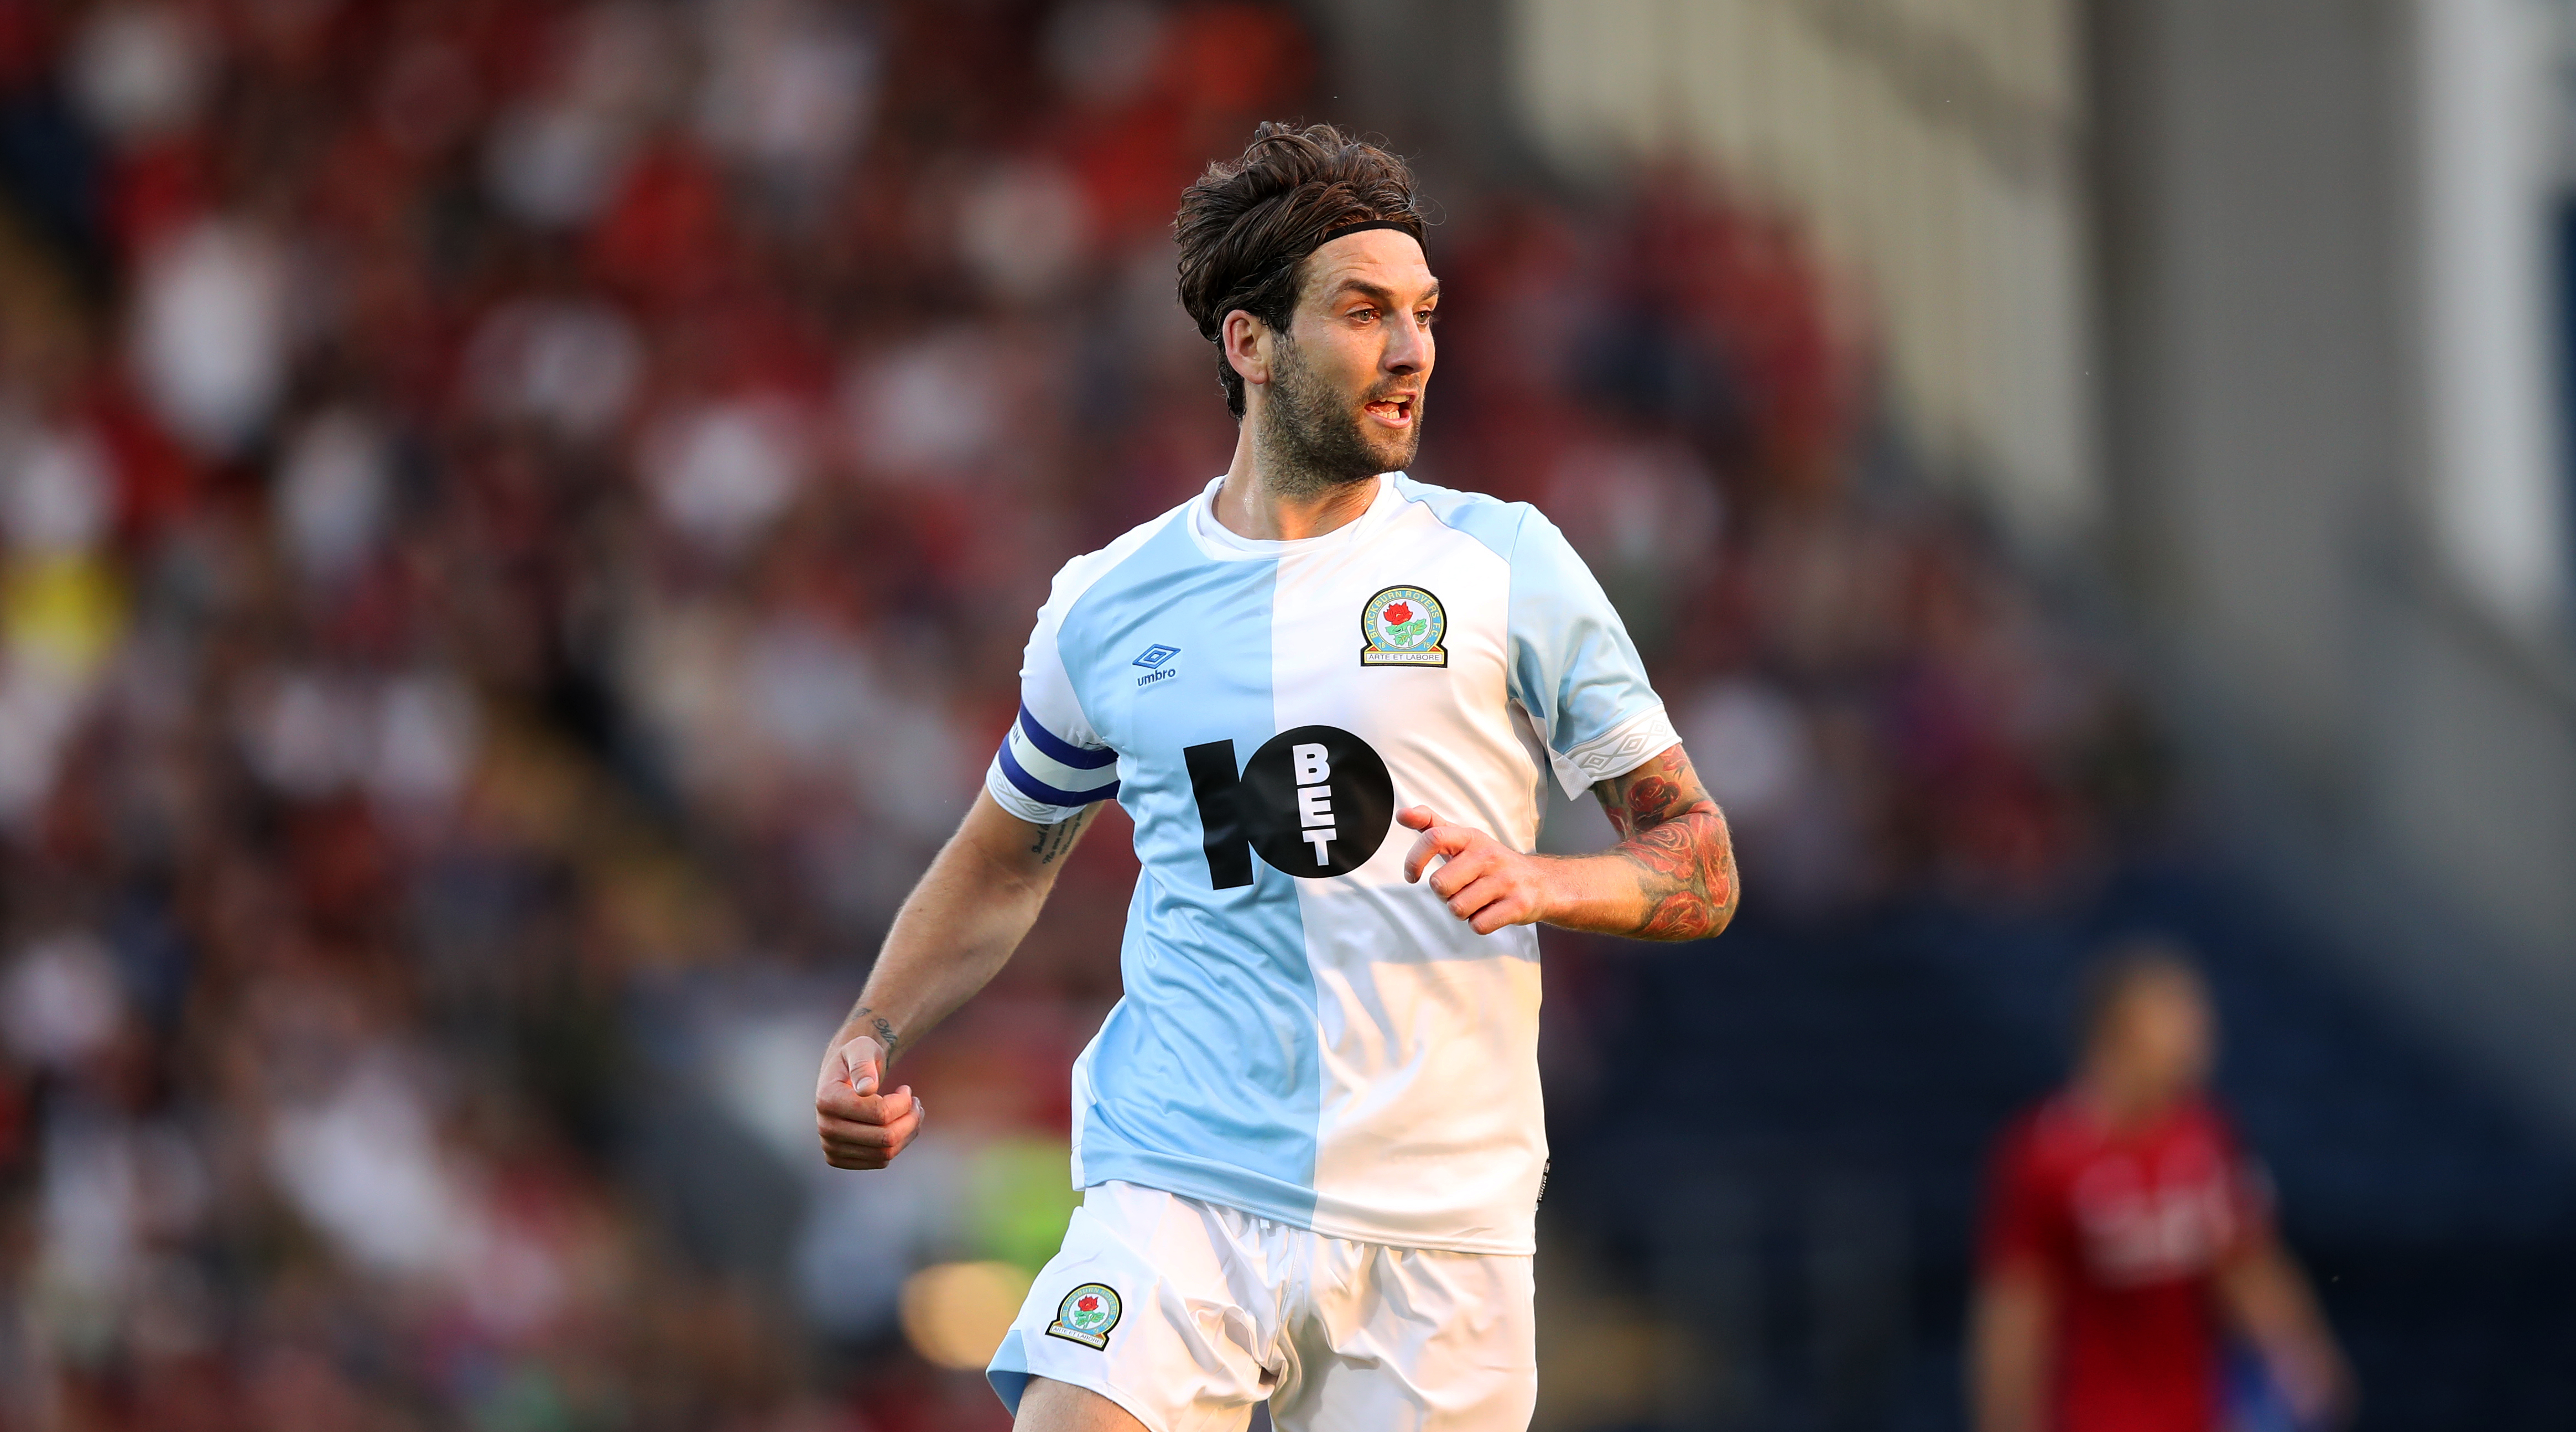 Blackburn Rovers vs Middlesbrough Betting Tips: Latest odds, team news, preview and predictions